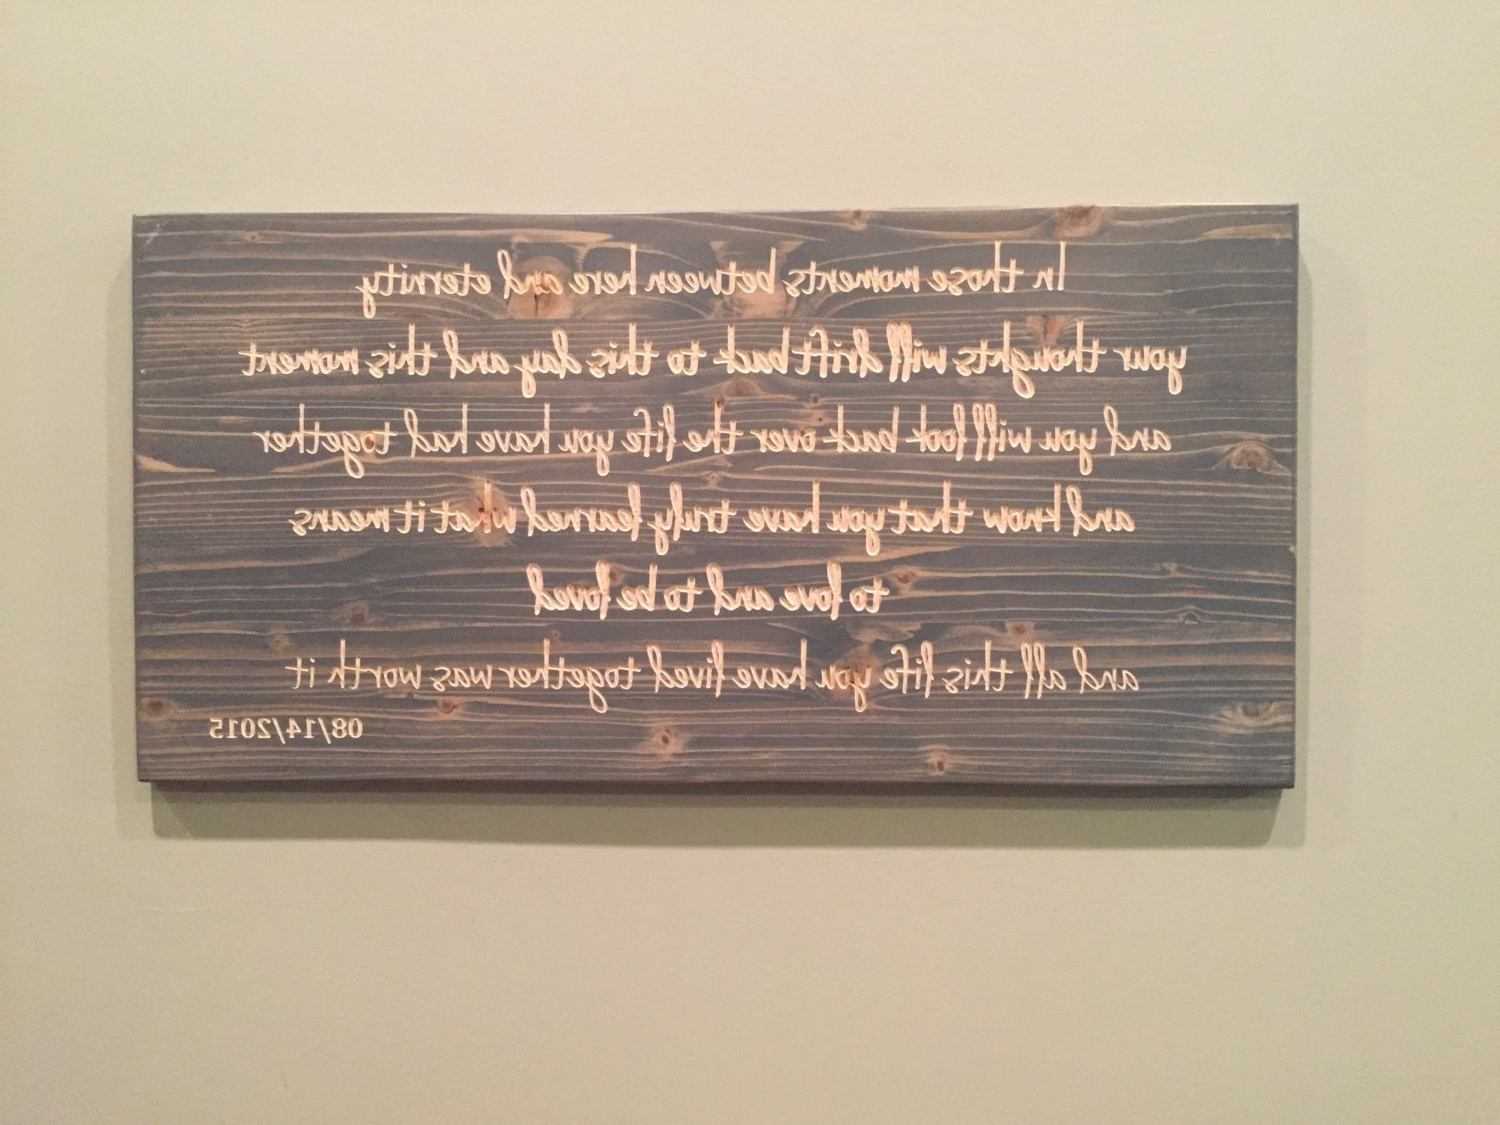 Wedding Vows, Carved Wood, Custom Quote Sign, Carved Wood Wall Art Pertaining To Famous Wooden Wall Art Quotes (View 9 of 15)